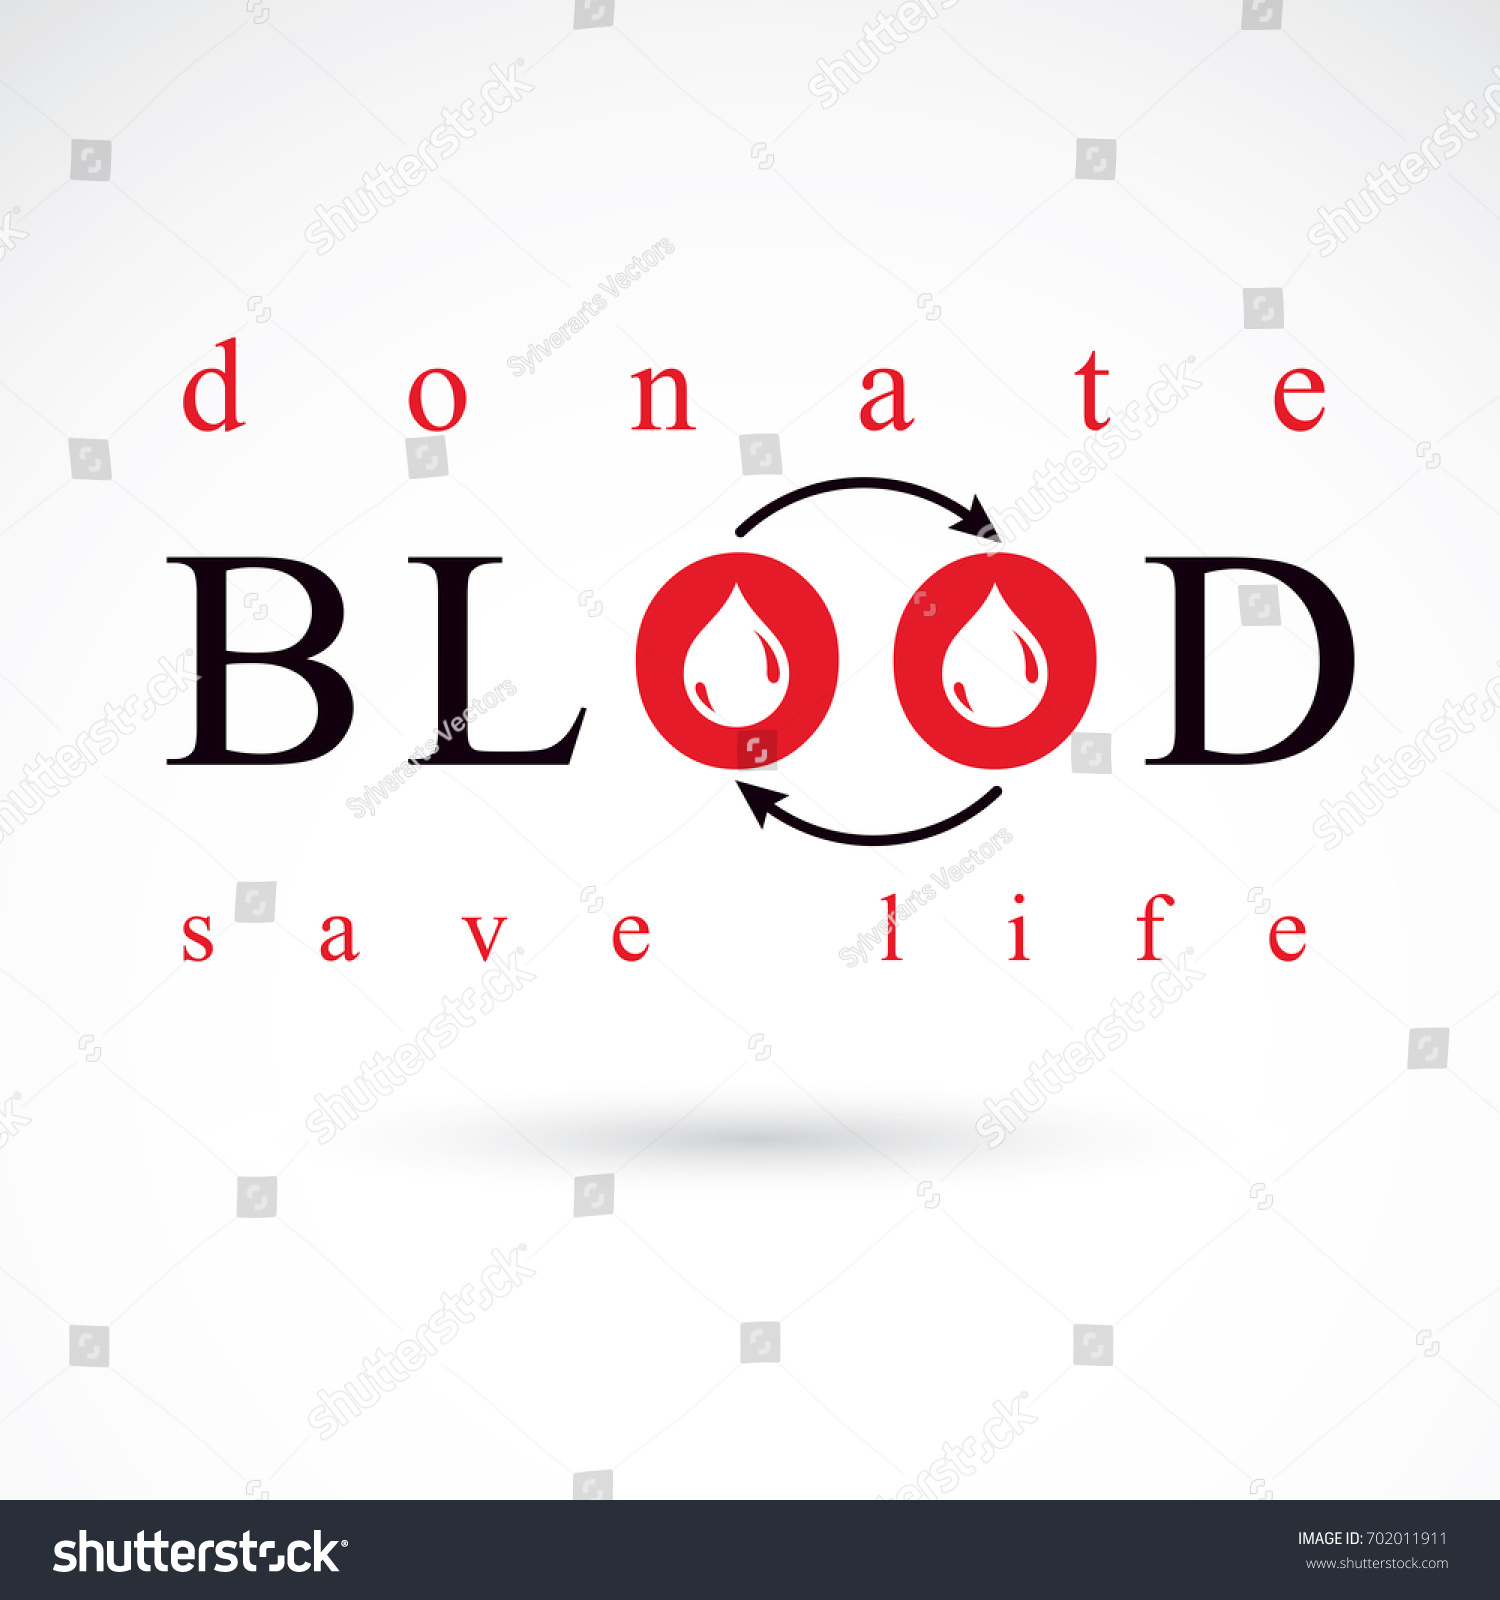 Blood donation symbol created red blood stock illustration blood donation symbol created with red blood drops and circulation arrows volunteer donorship healthcare buycottarizona